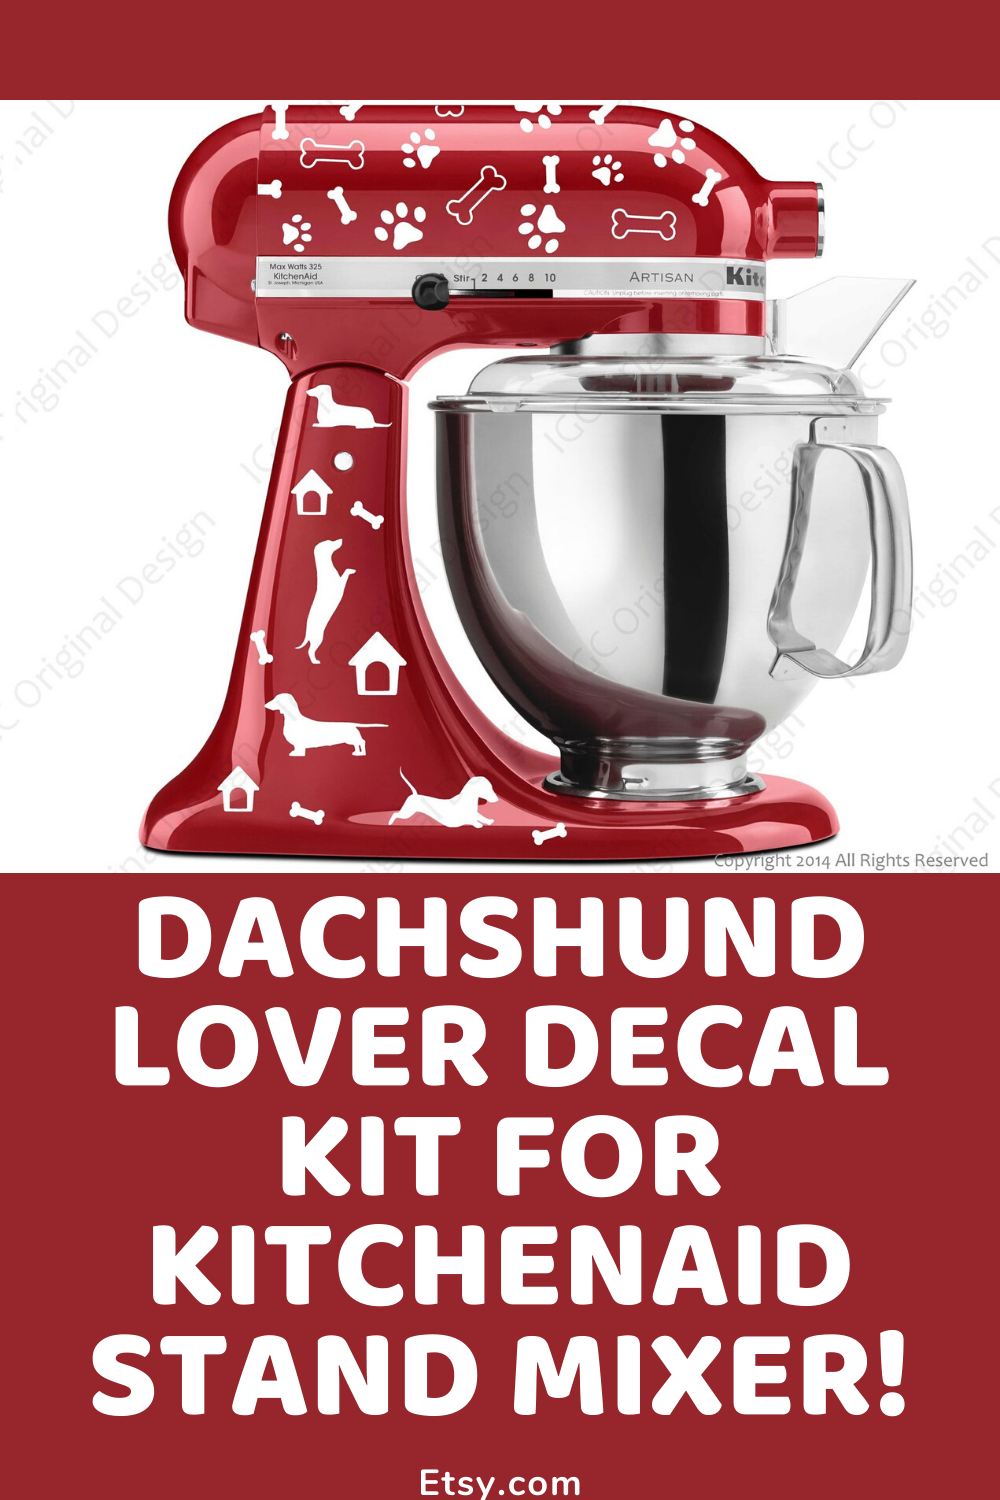 Doxie Lovers Decal Kit For Kitchenaid Stand Mixer Dachshund Lover Small Dog House Kitchen Aid Decals Large